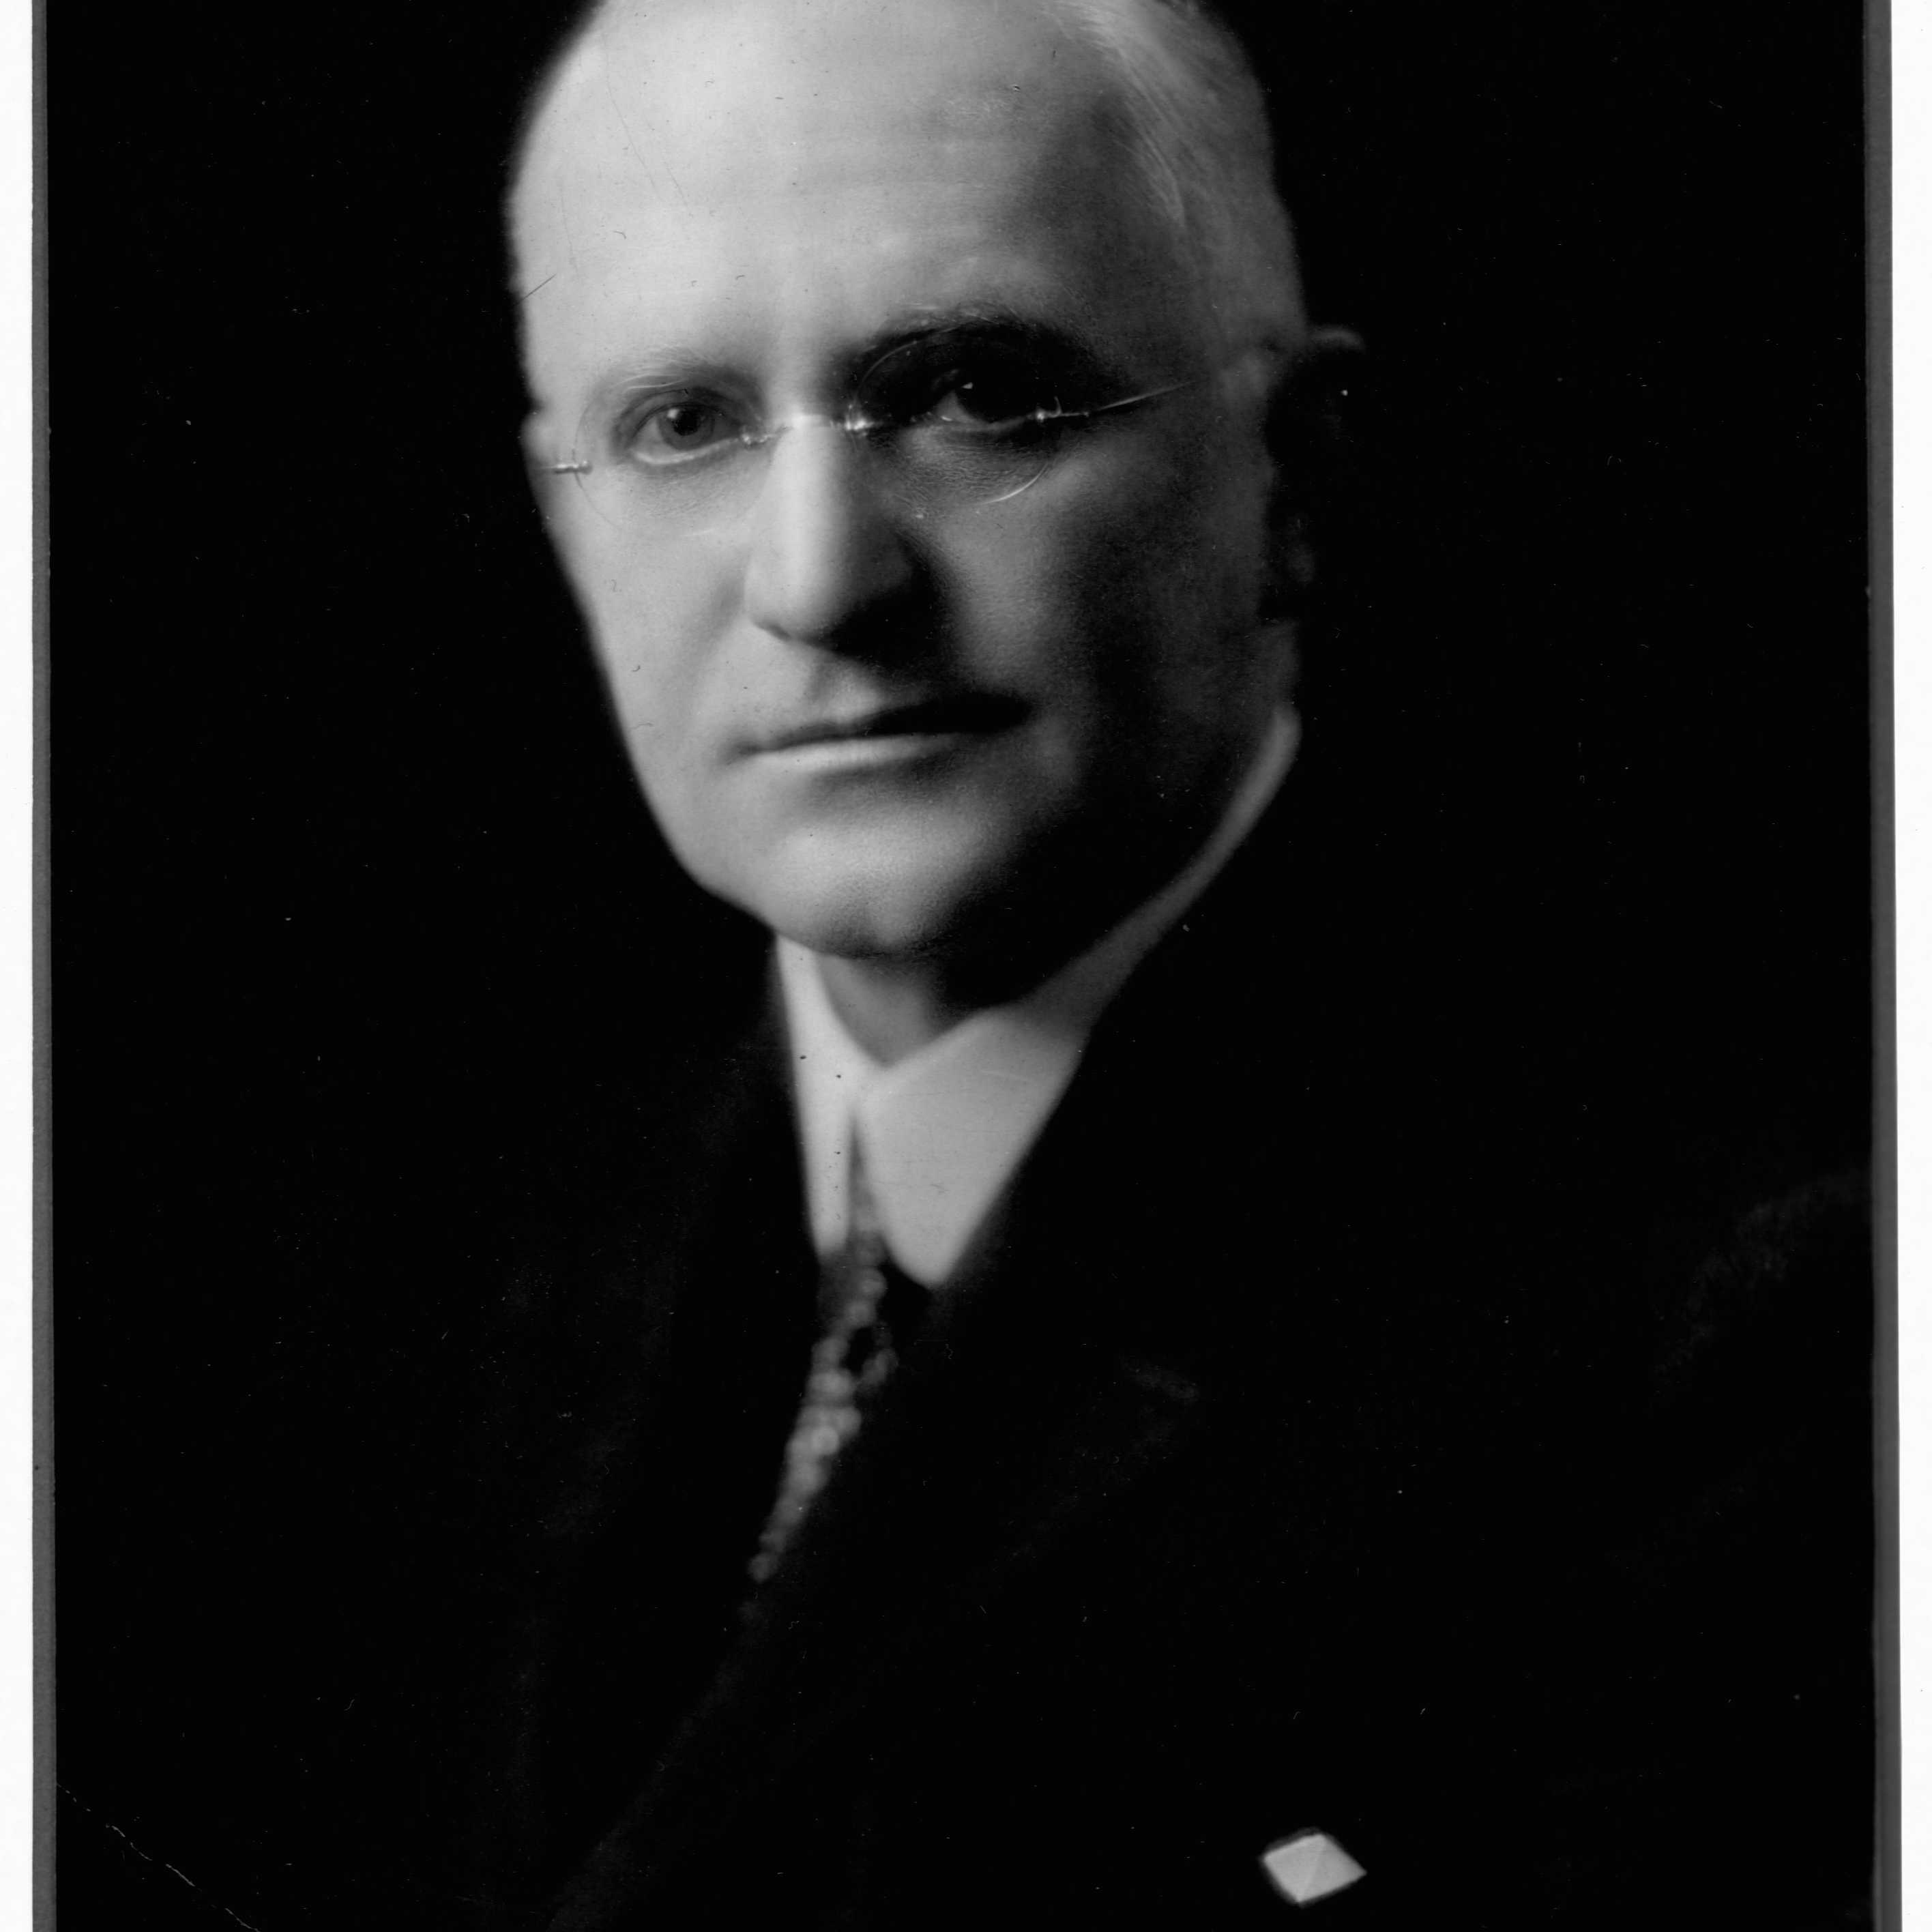 Inventor and industrialist George Eastman invented the Kodak box camera and introduced daylight-loading film.